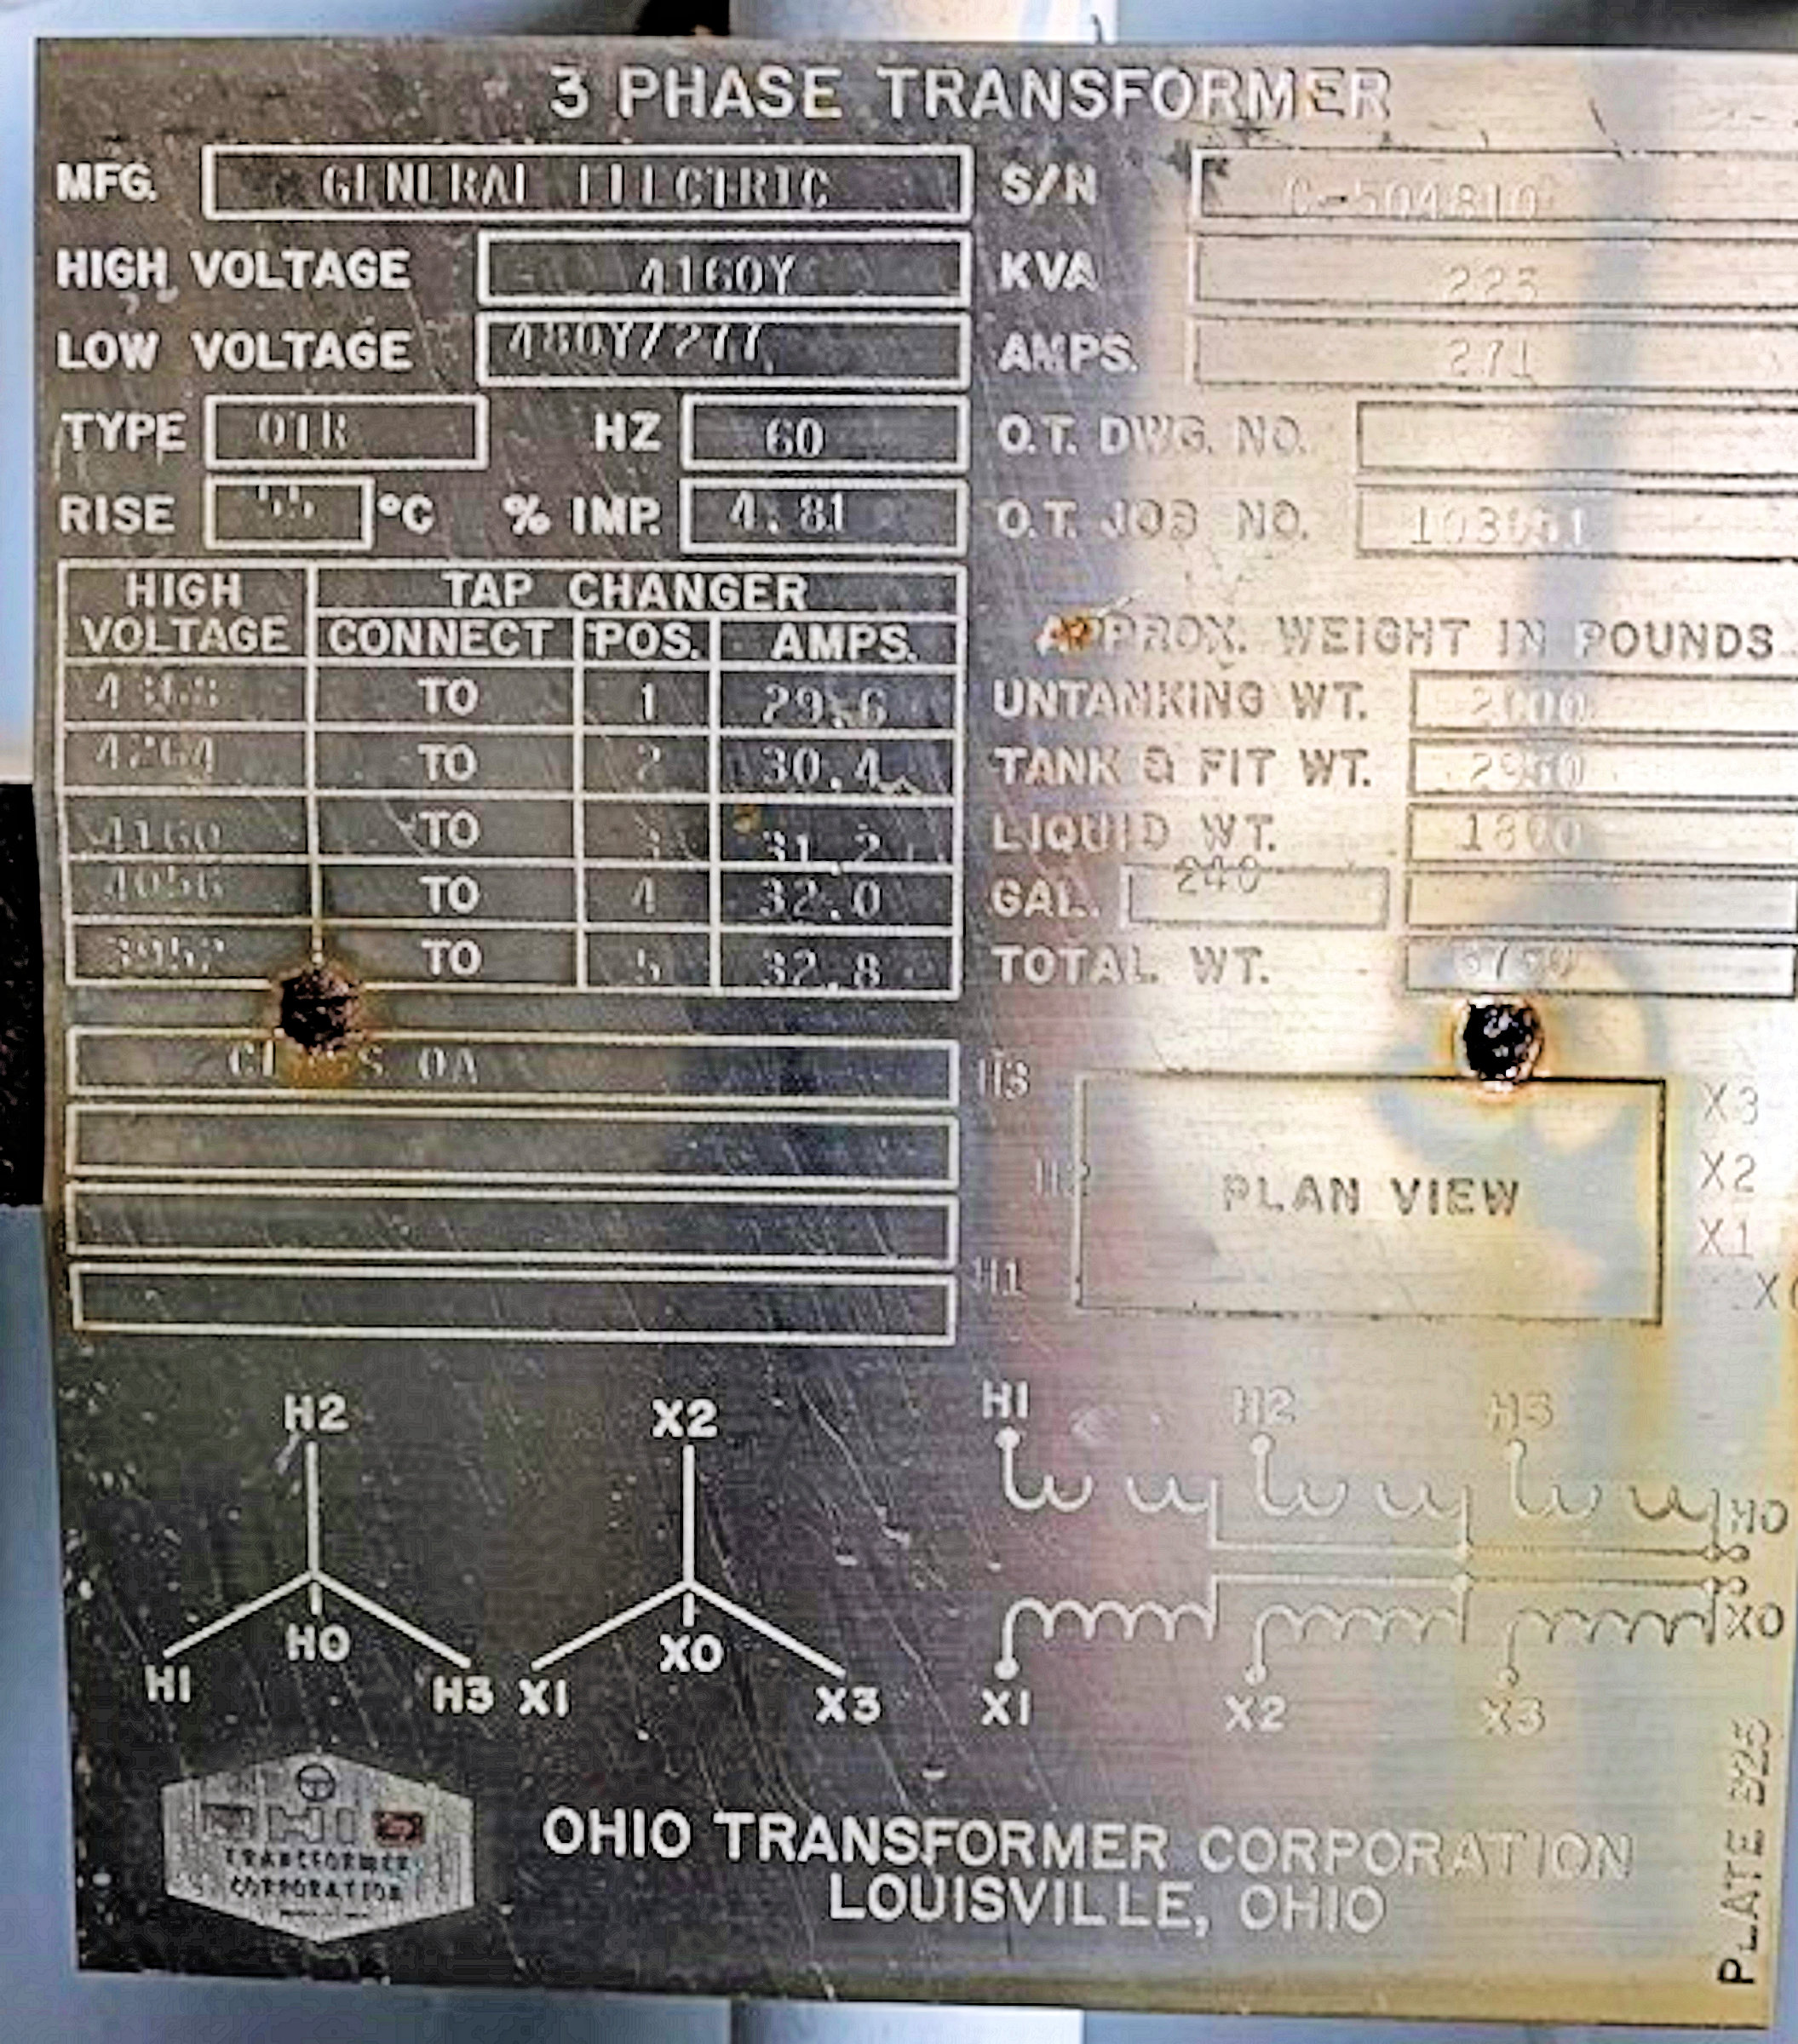 GENERAL ELECTRIC 225 KVA 3-Phase Transformer, 4160 Y down to 480 Y/277